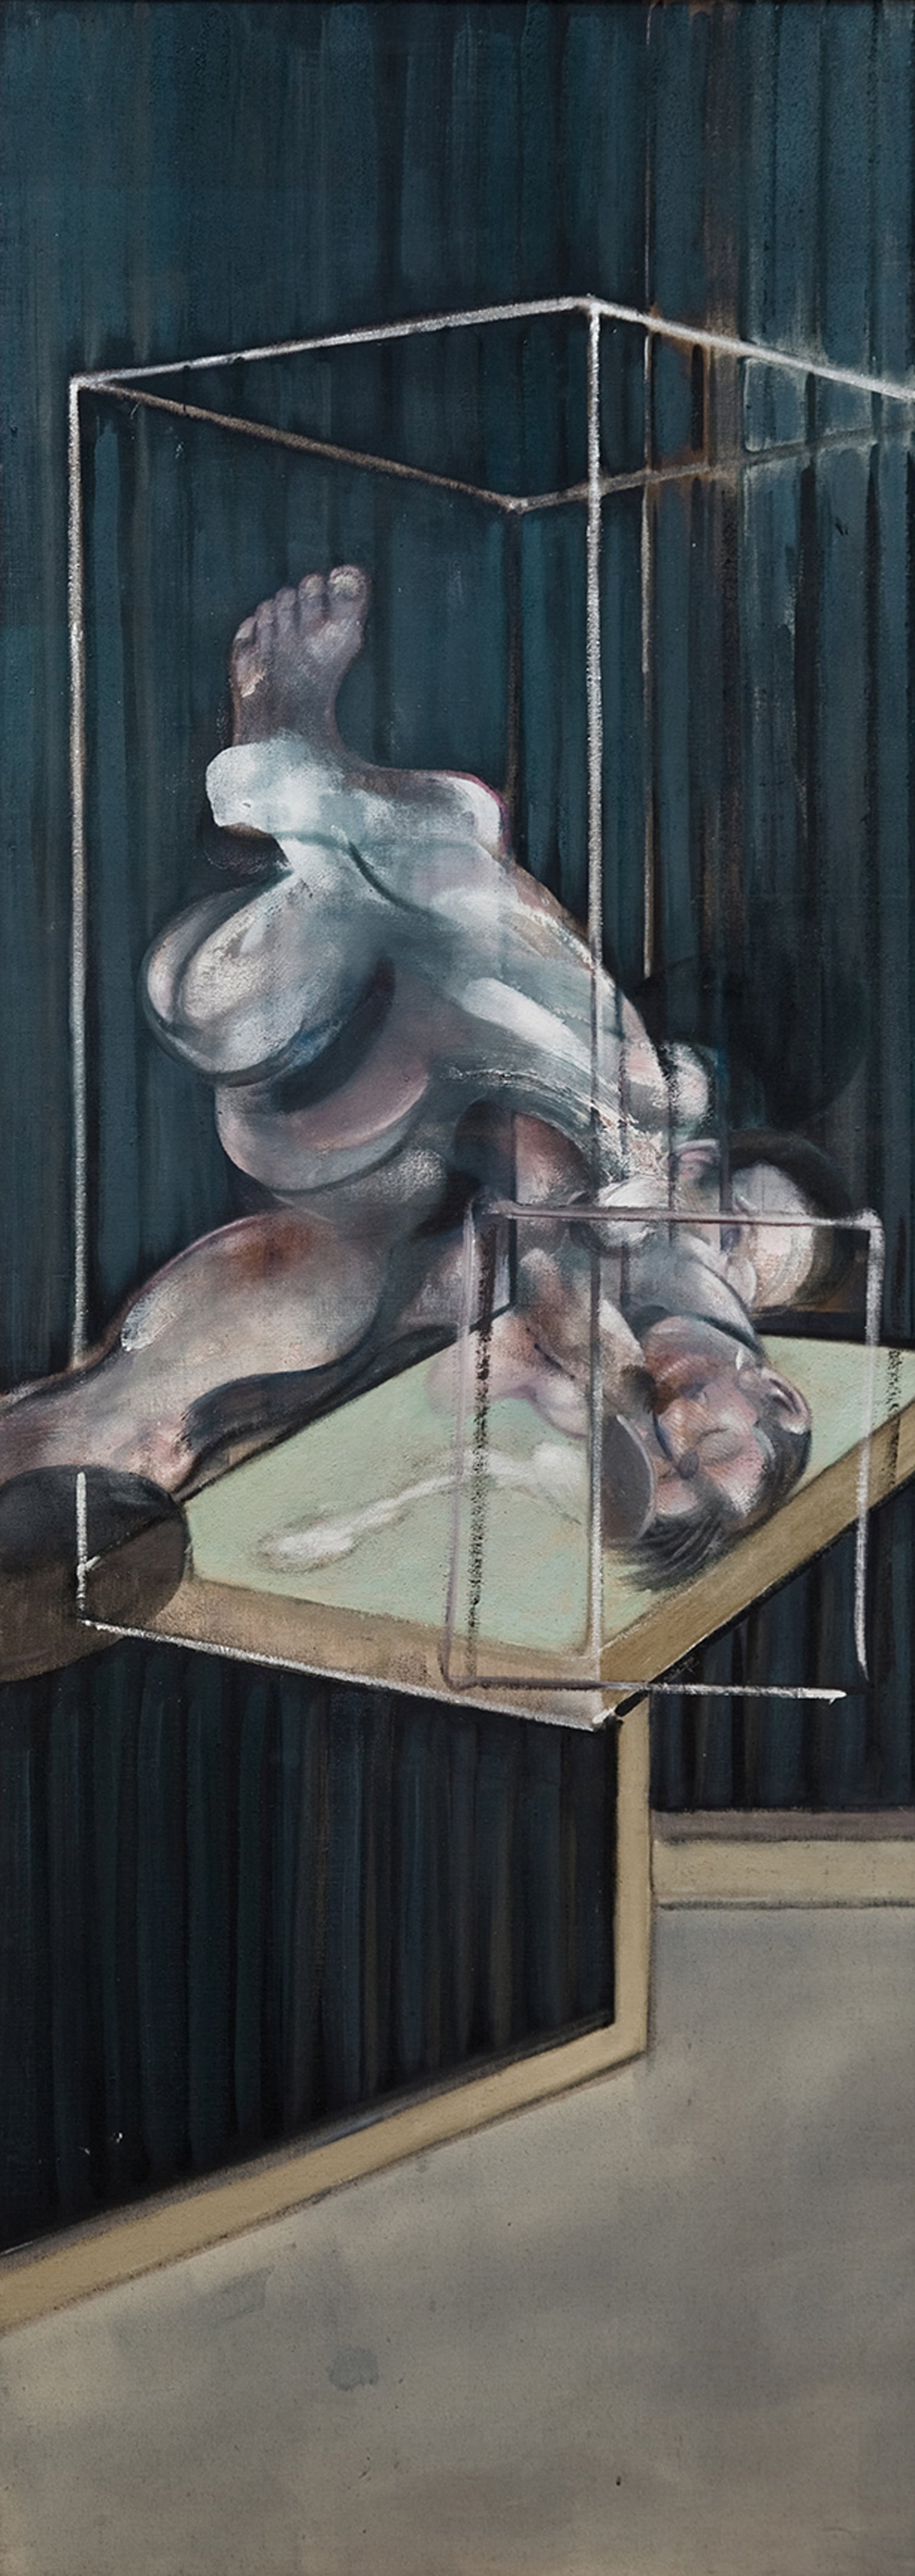 Francis Bacon, Two Figures, 1975, Private Collection